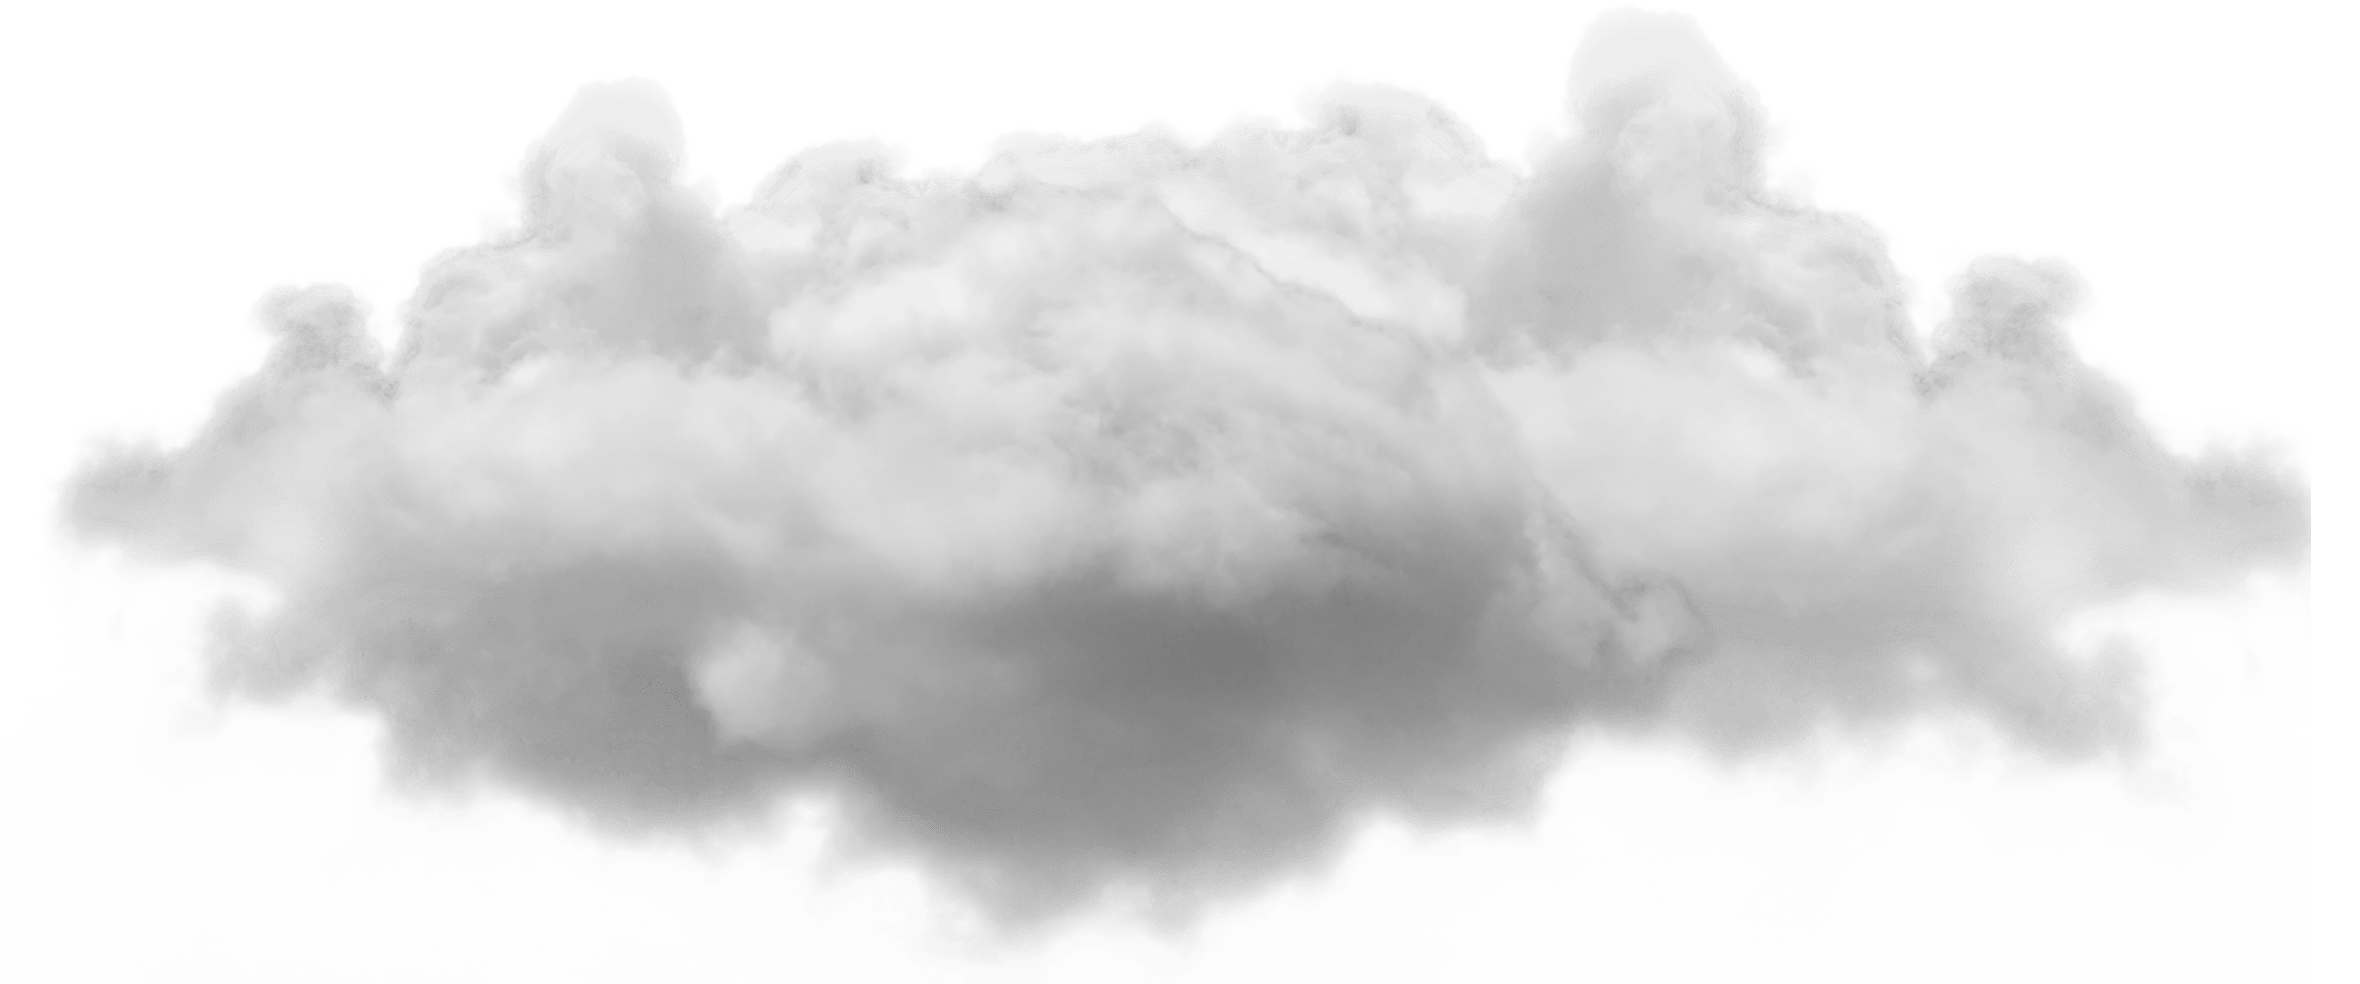 small single cloud image transparent #8114